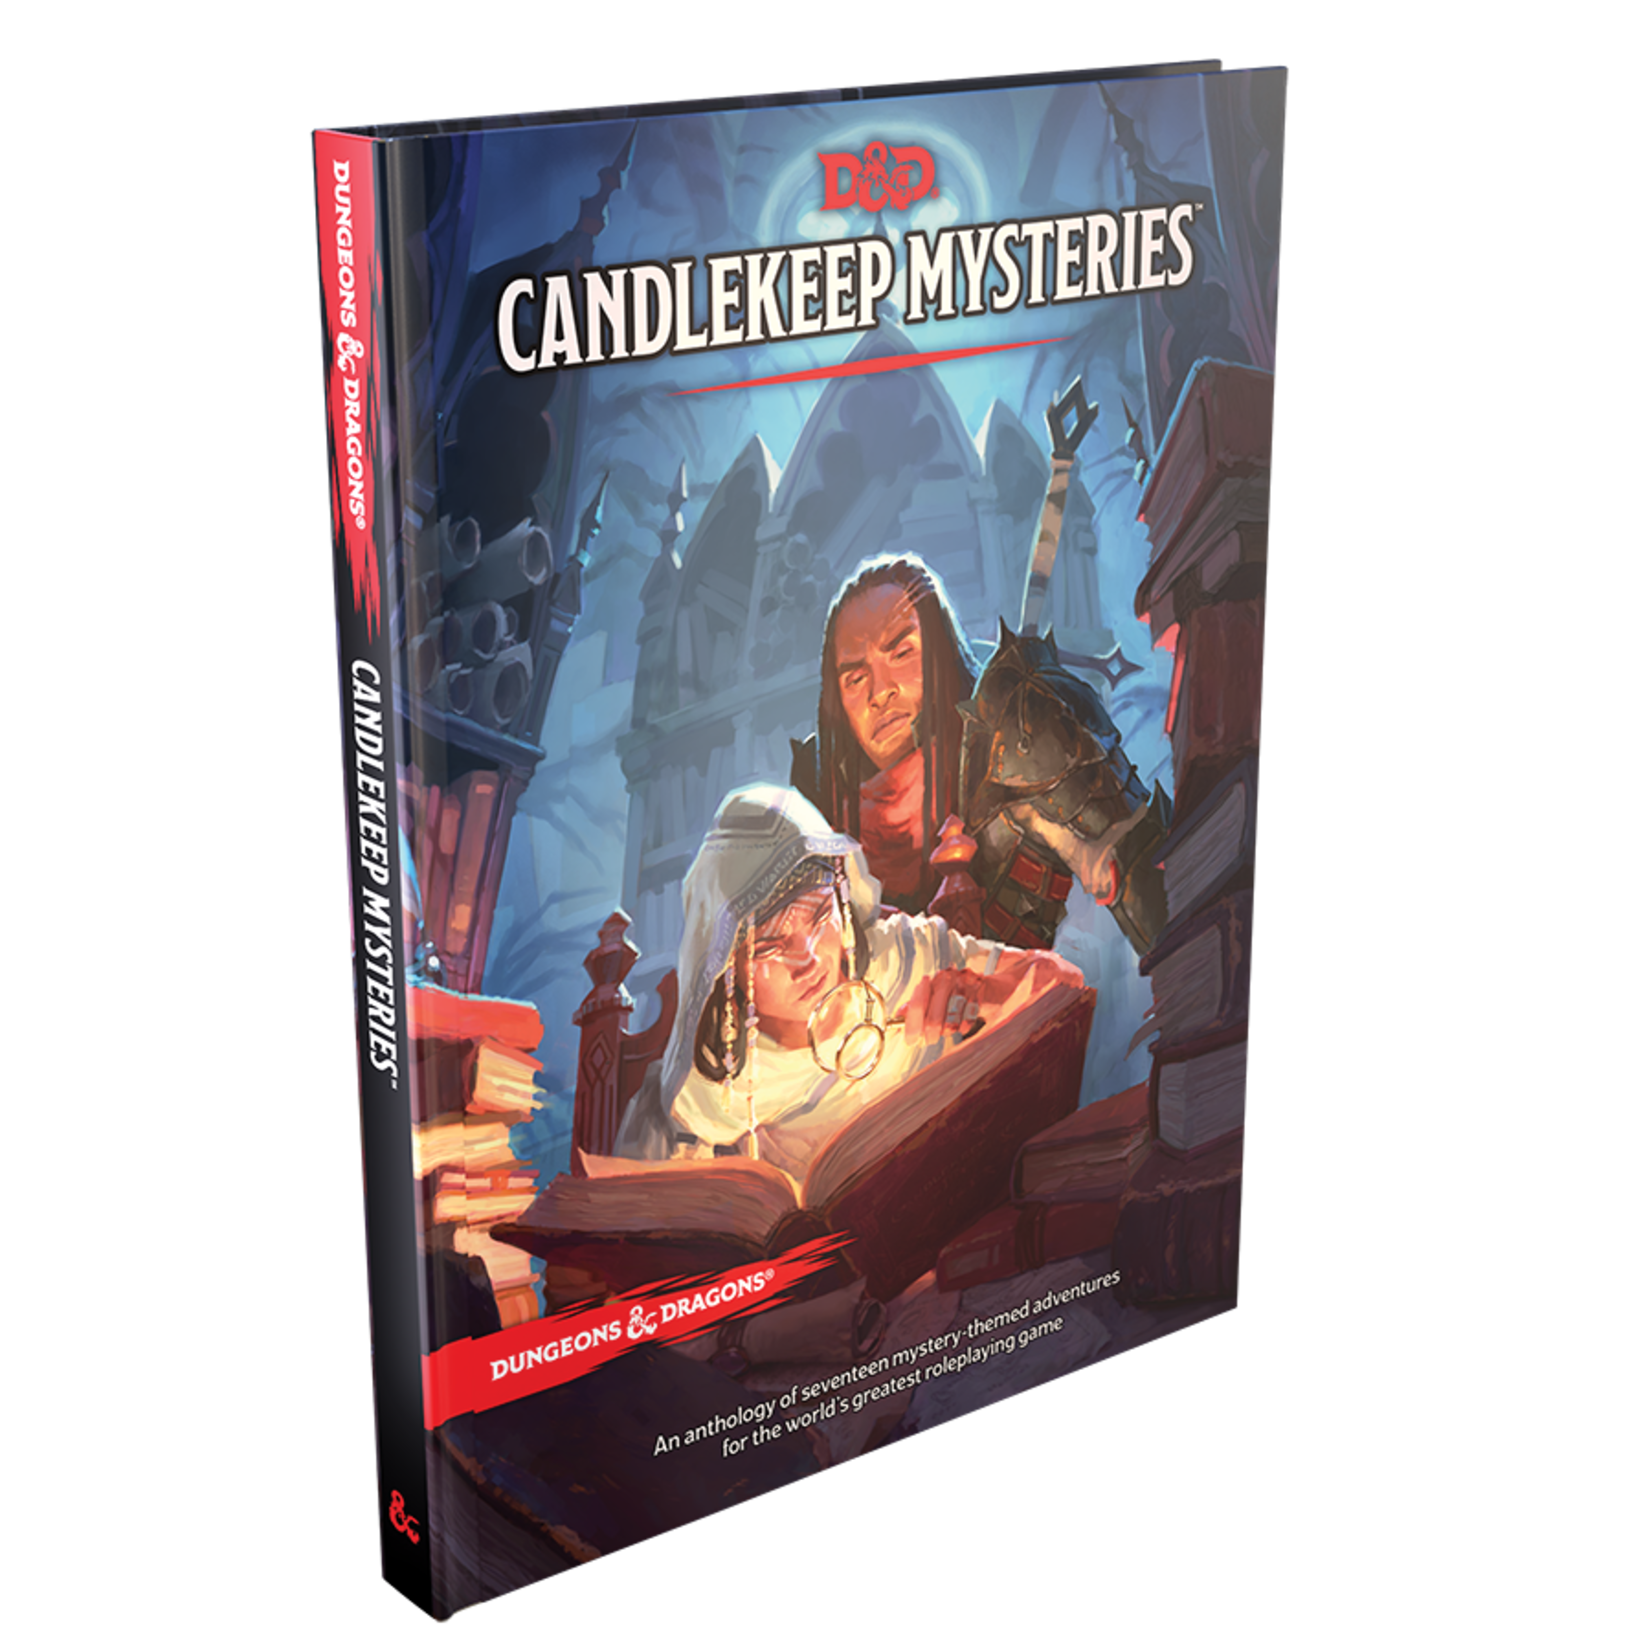 Dungeons & Dragons Dungeons & Dragons 5th Edition: Candlekeep Mysteries (Regular Cover)